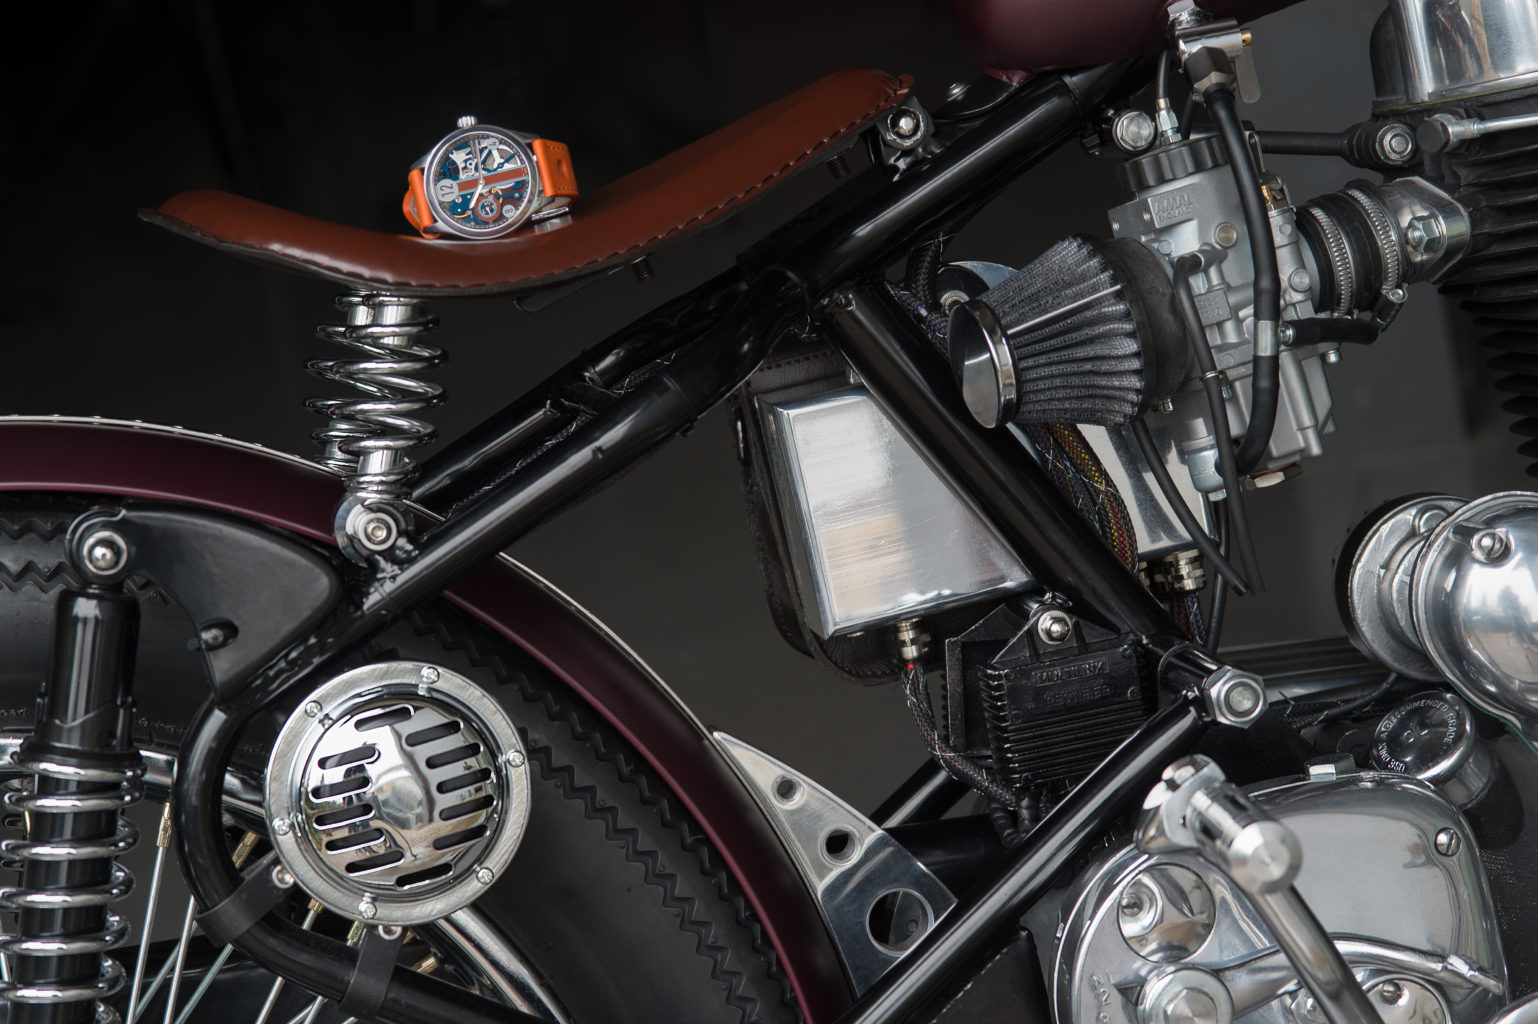 Royal Enfield Bullet by Watchmaker Motorcycle